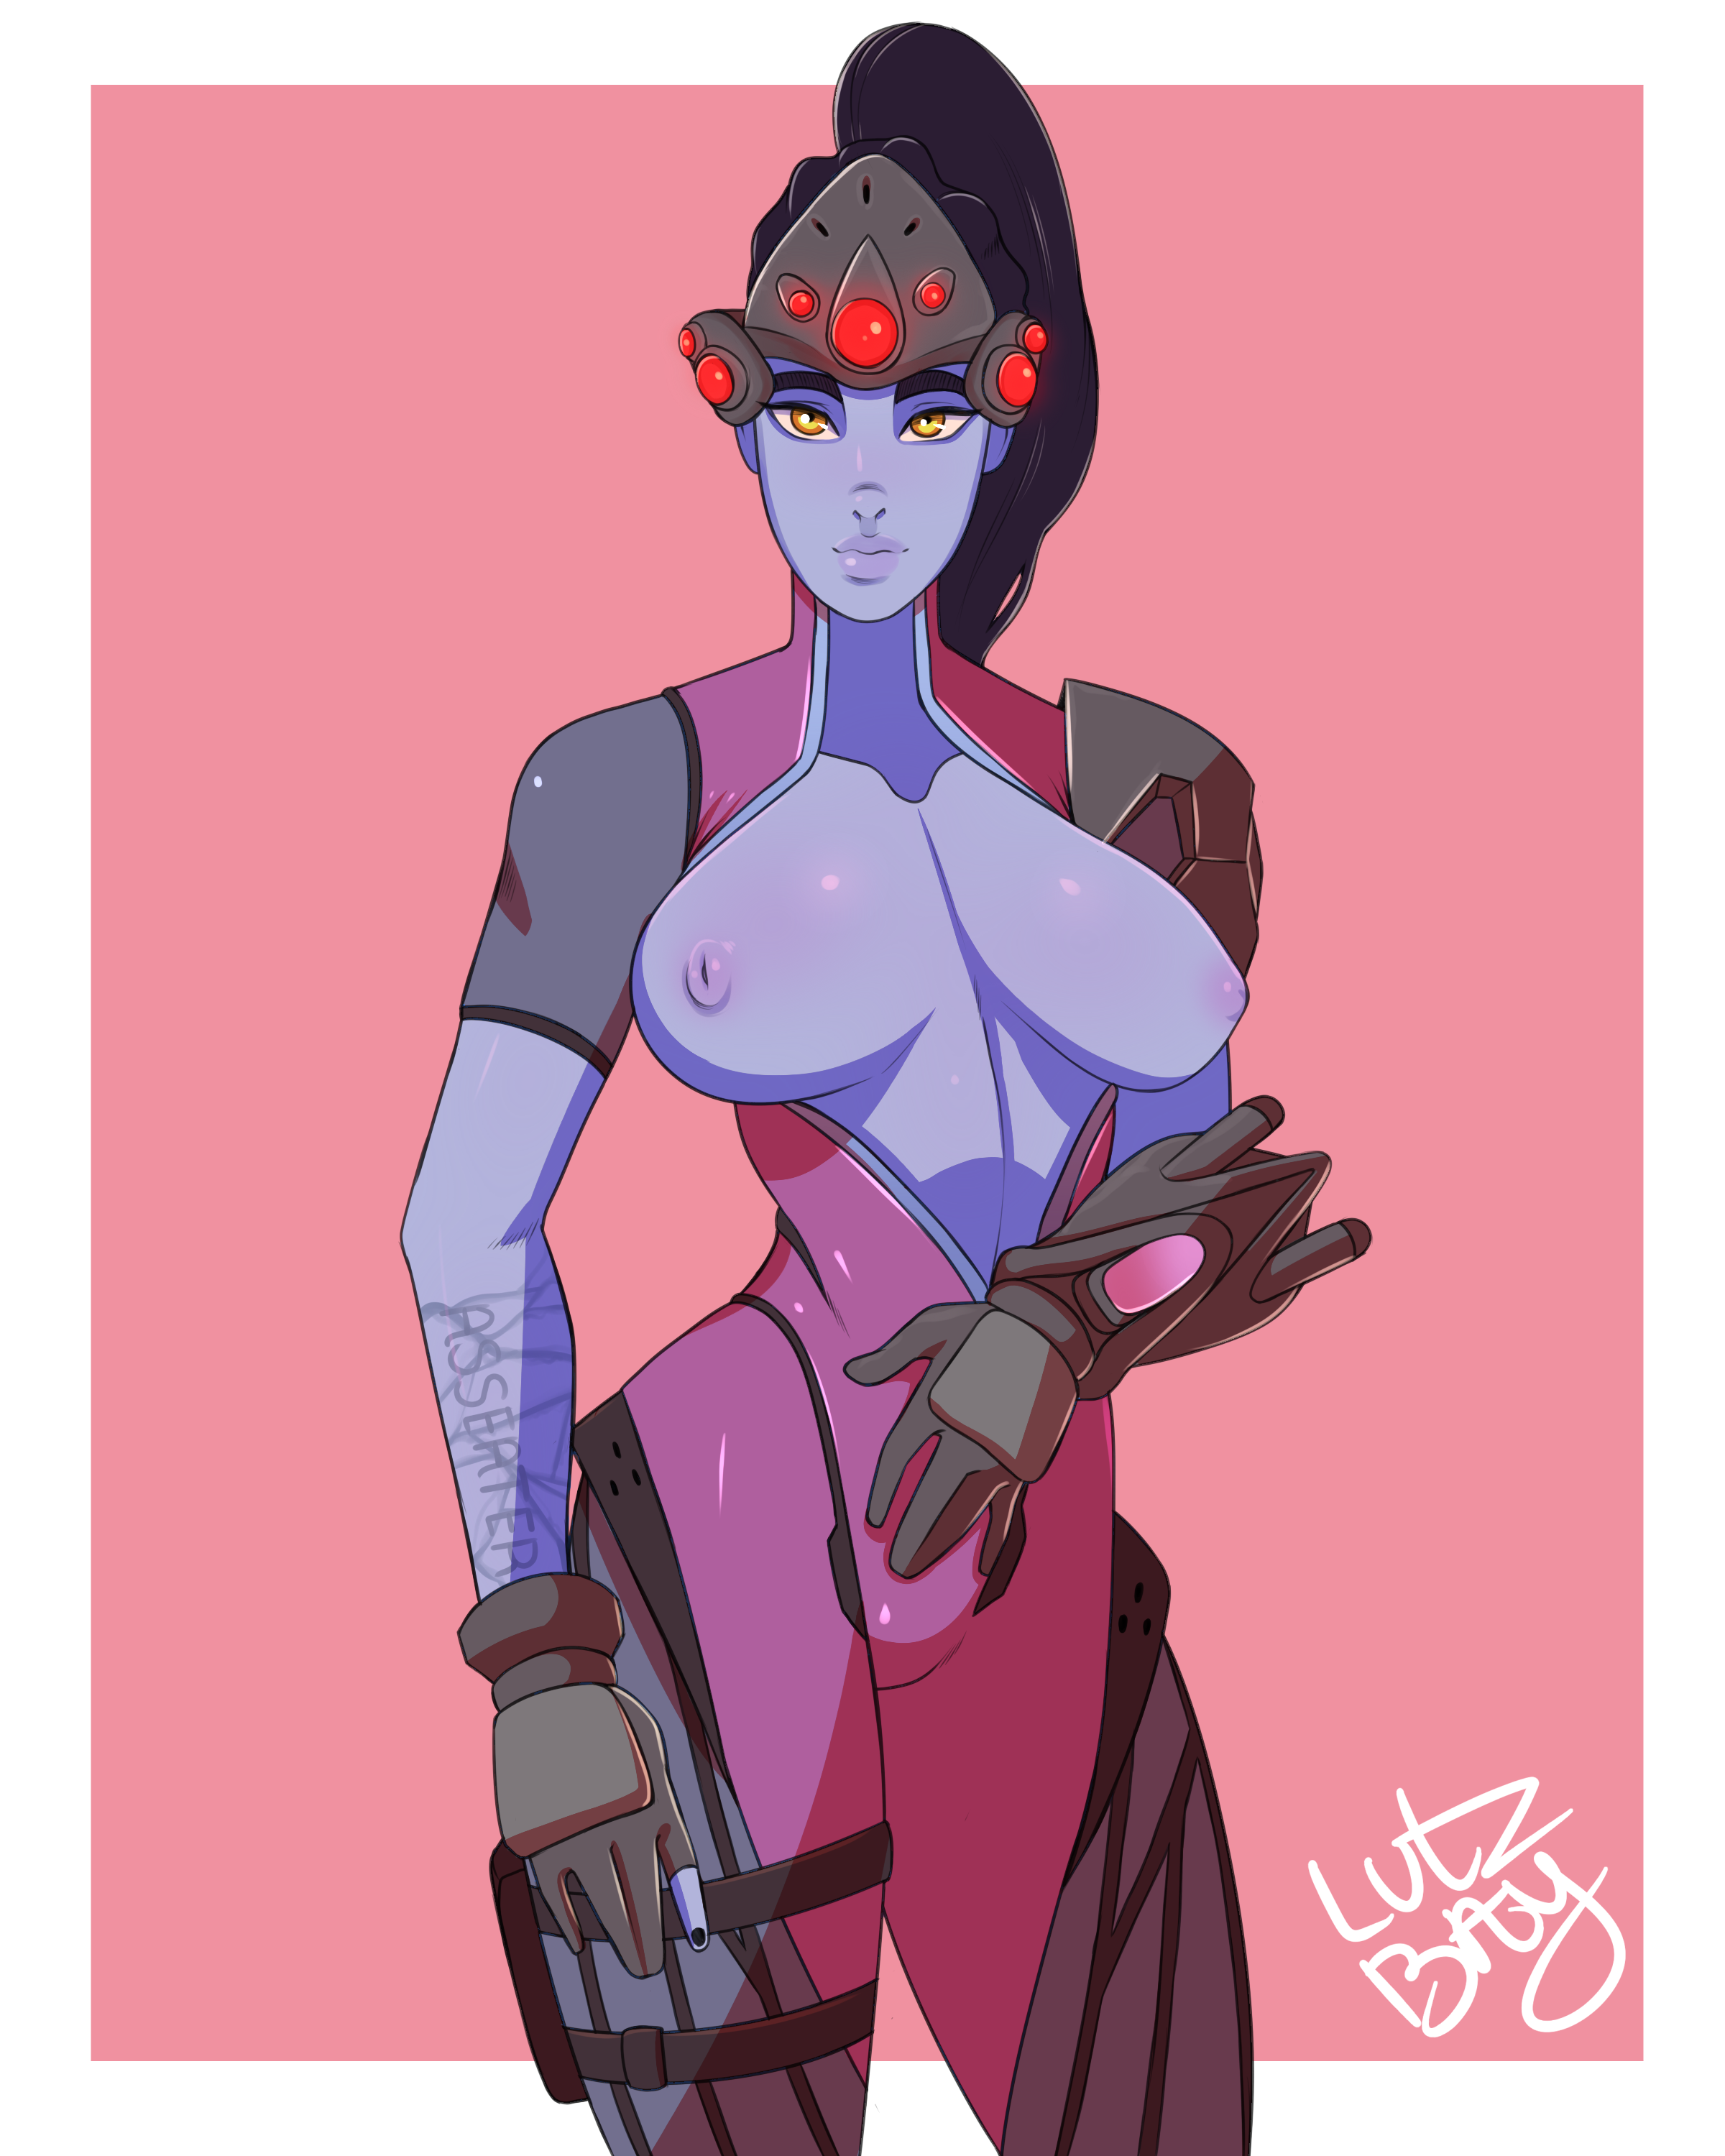 Widowmaker tits